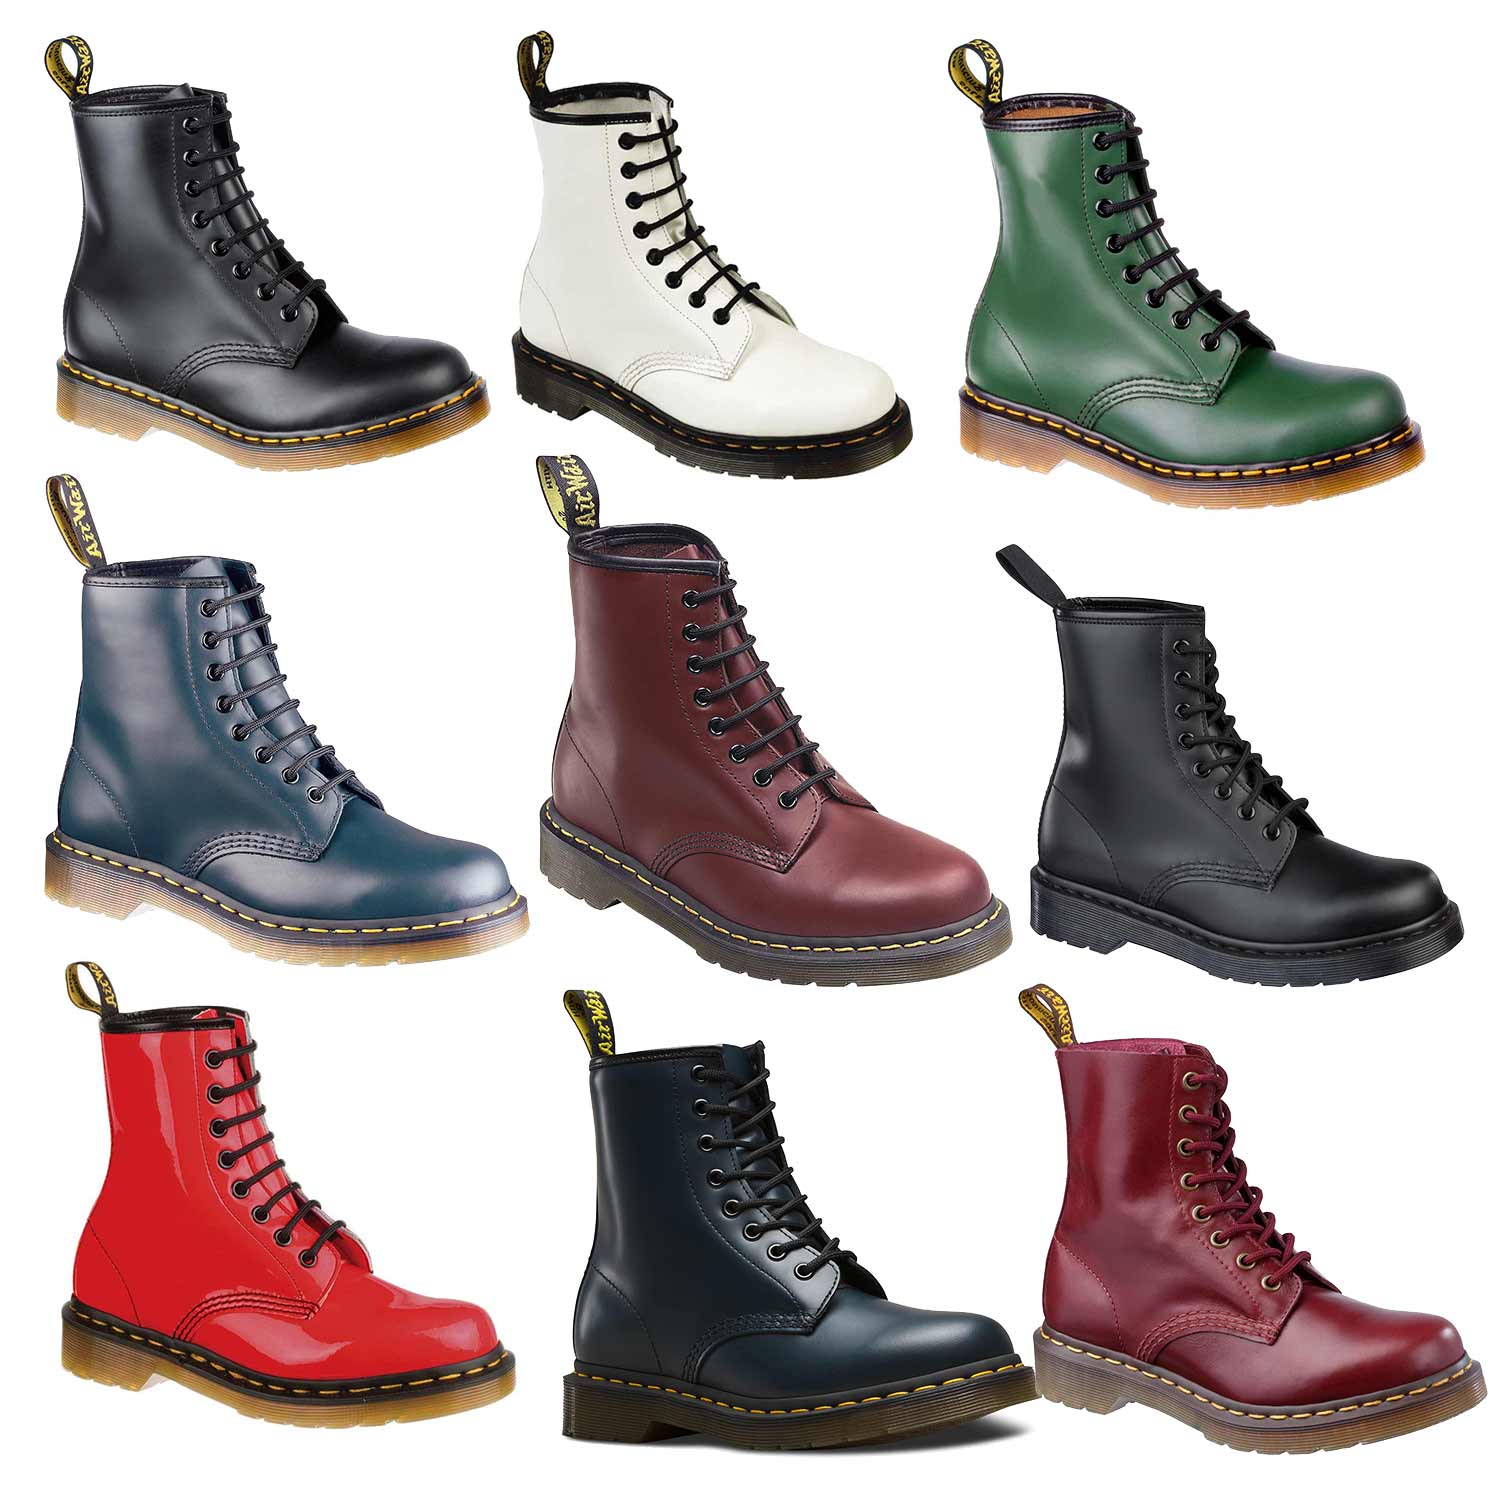 dr martens doc bottes lisse 8 il trou 1460z bottes en. Black Bedroom Furniture Sets. Home Design Ideas